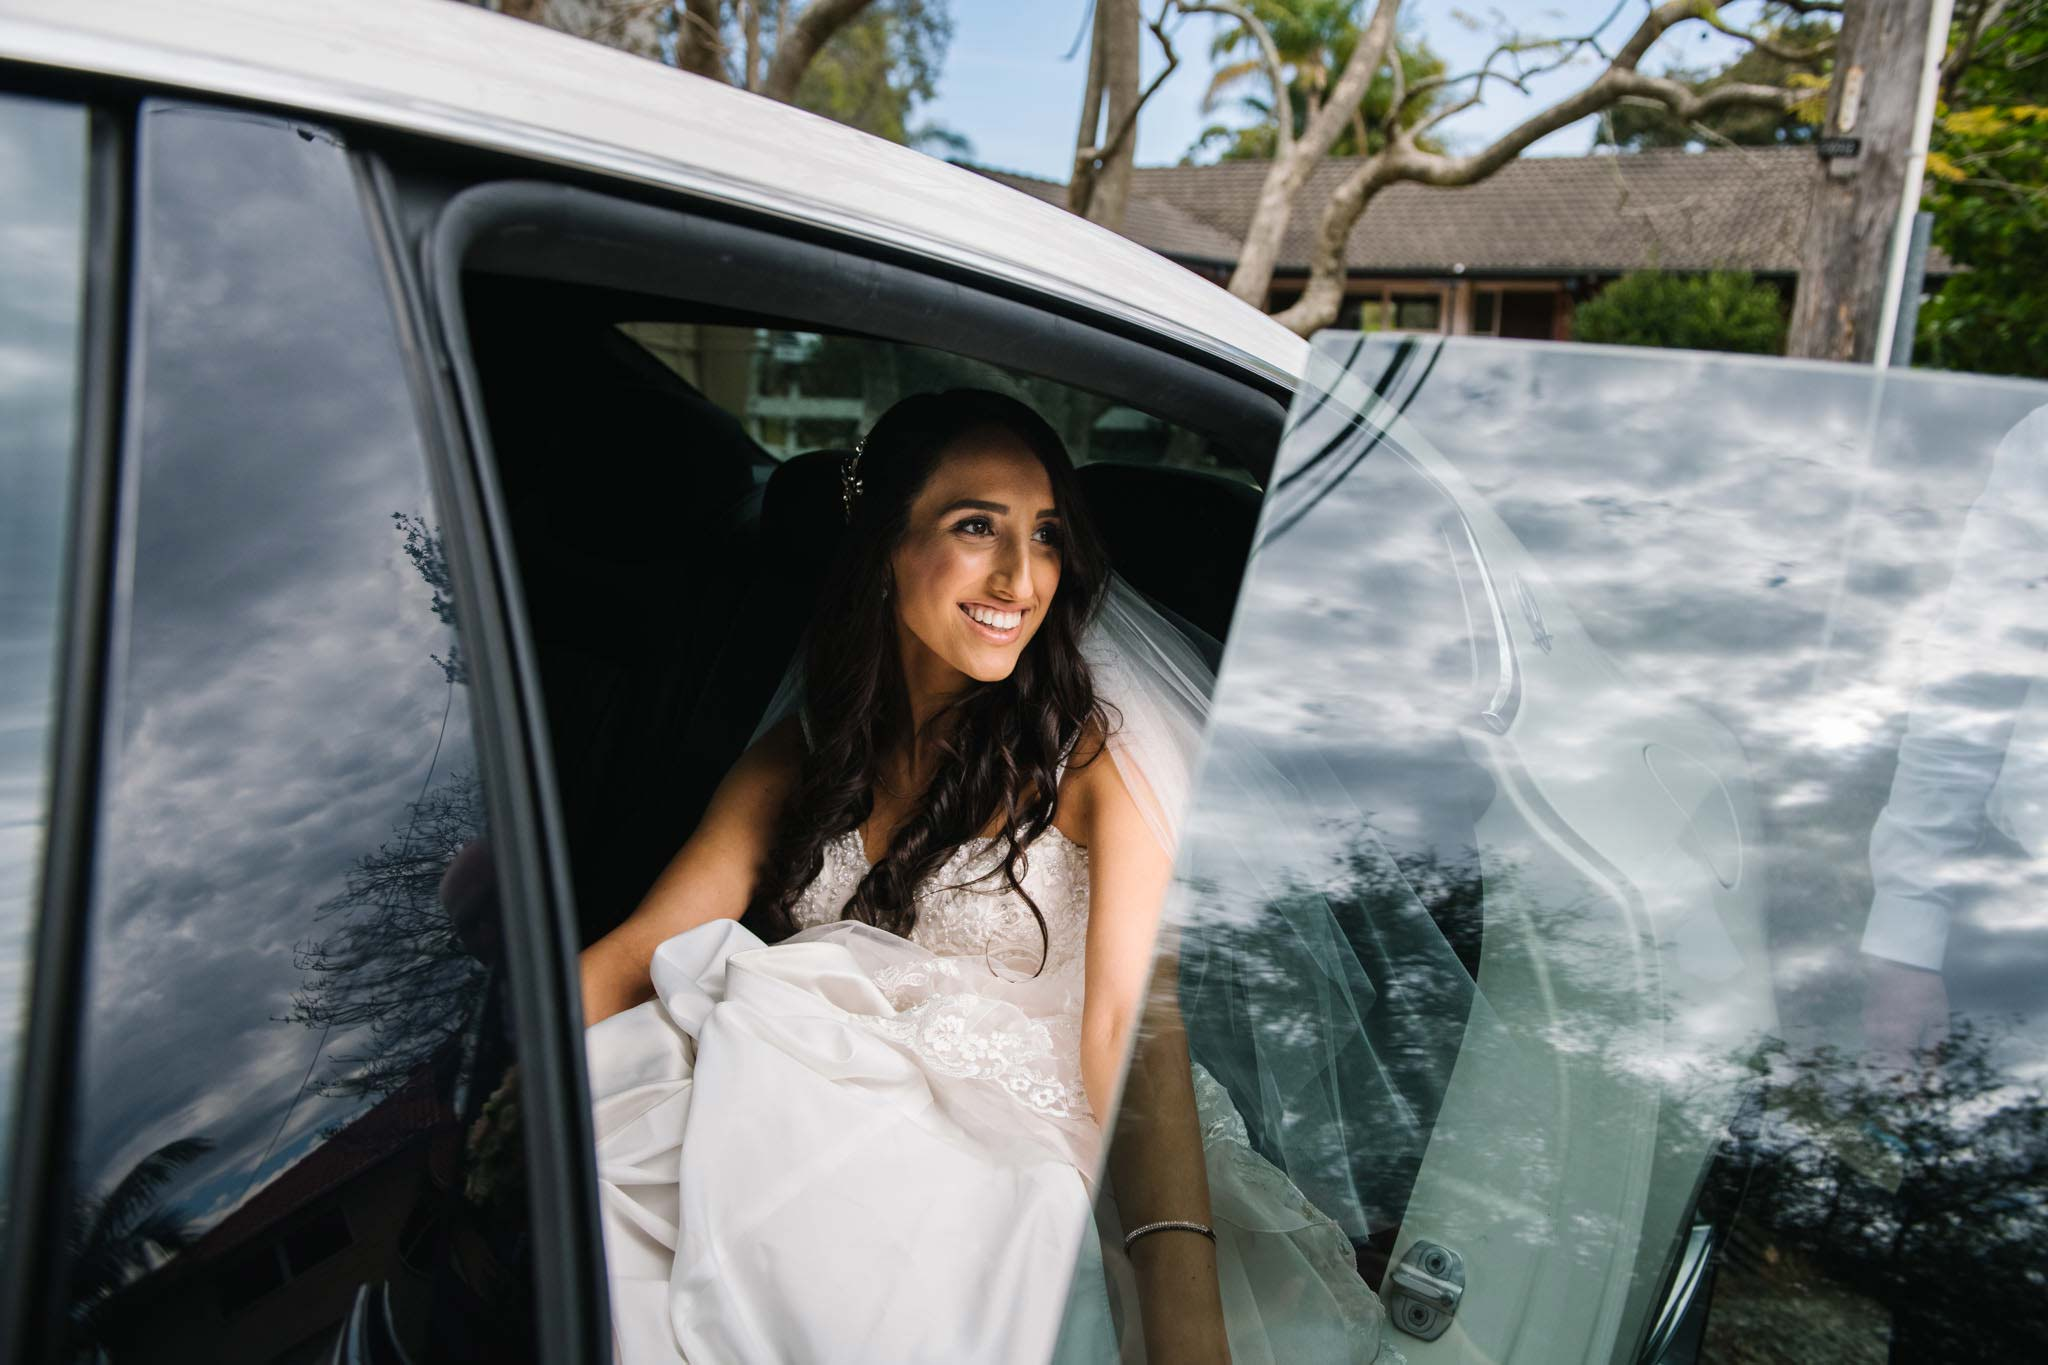 Bride smiling as she climbs into wedding car